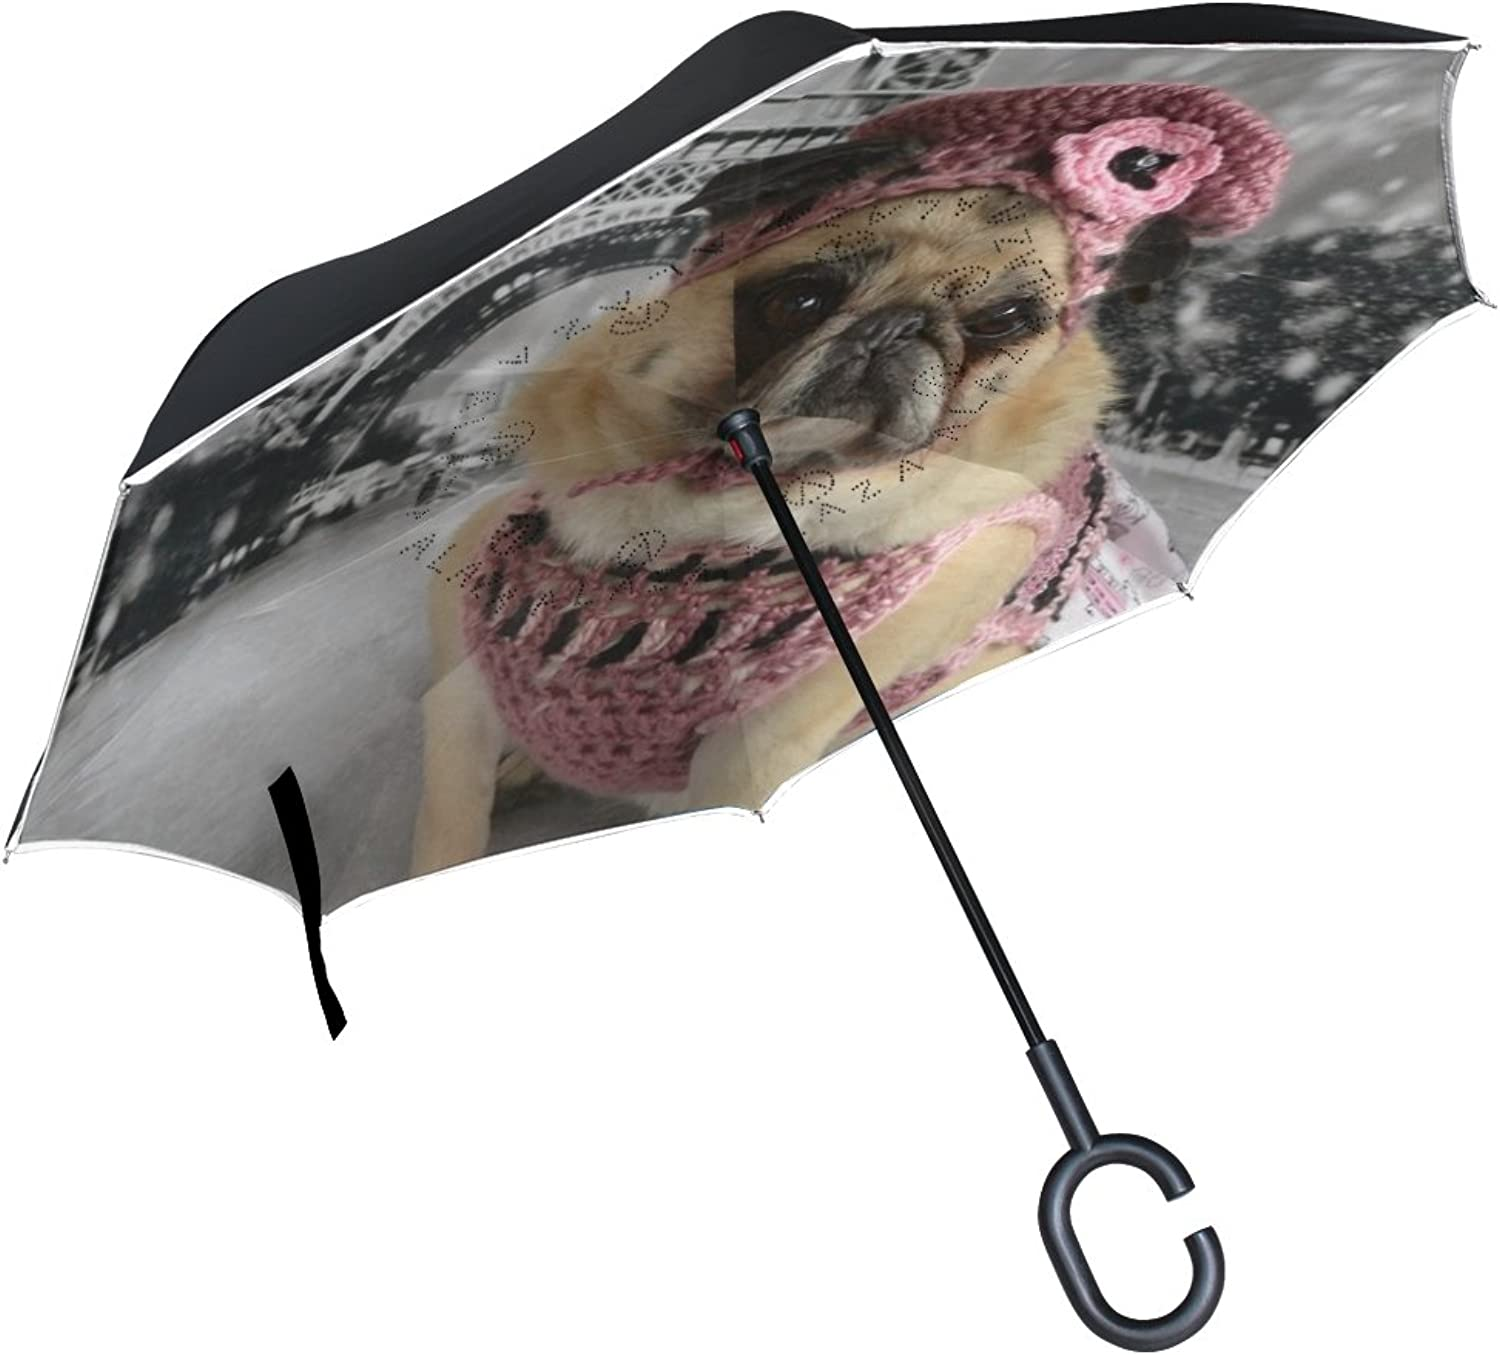 OREZI Double Layer Ingreened Umbrellas Reverse Folding Umbrella Windproof Predection Big Straight Umbrella for Car Rain Outdoor with CShaped Handle,Fawn Pug with Eiffel Tower Umbrella for Wome